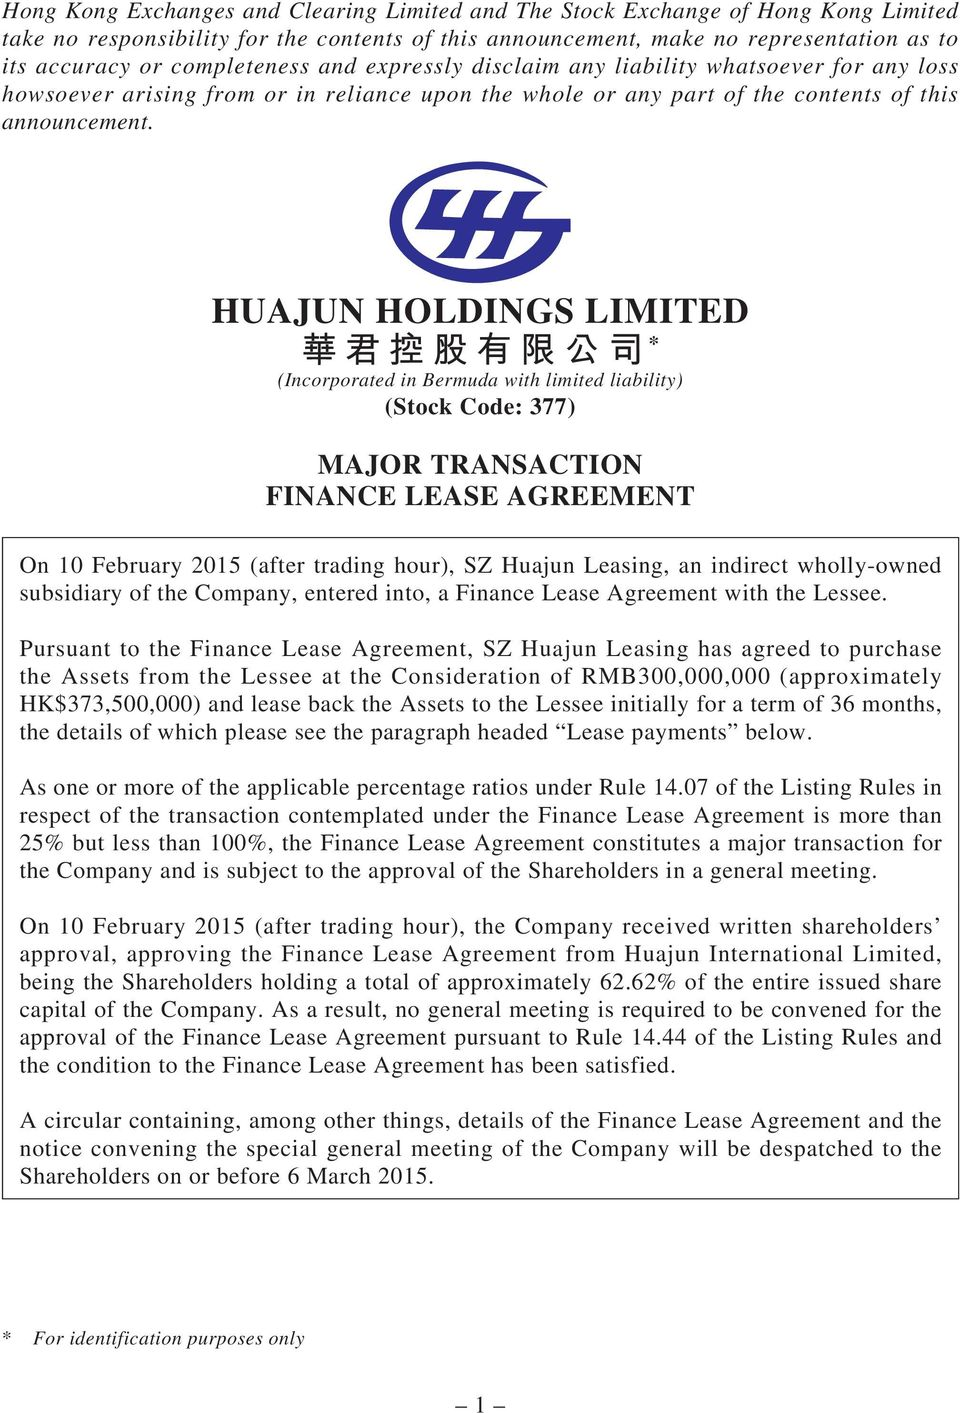 HUAJUN HOLDINGS LIMITED * (Incorporated in Bermuda with limited liability) (Stock Code: 377) MAJOR TRANSACTION FINANCE LEASE AGREEMENT On 10 February 2015 (after trading hour), SZ Huajun Leasing, an